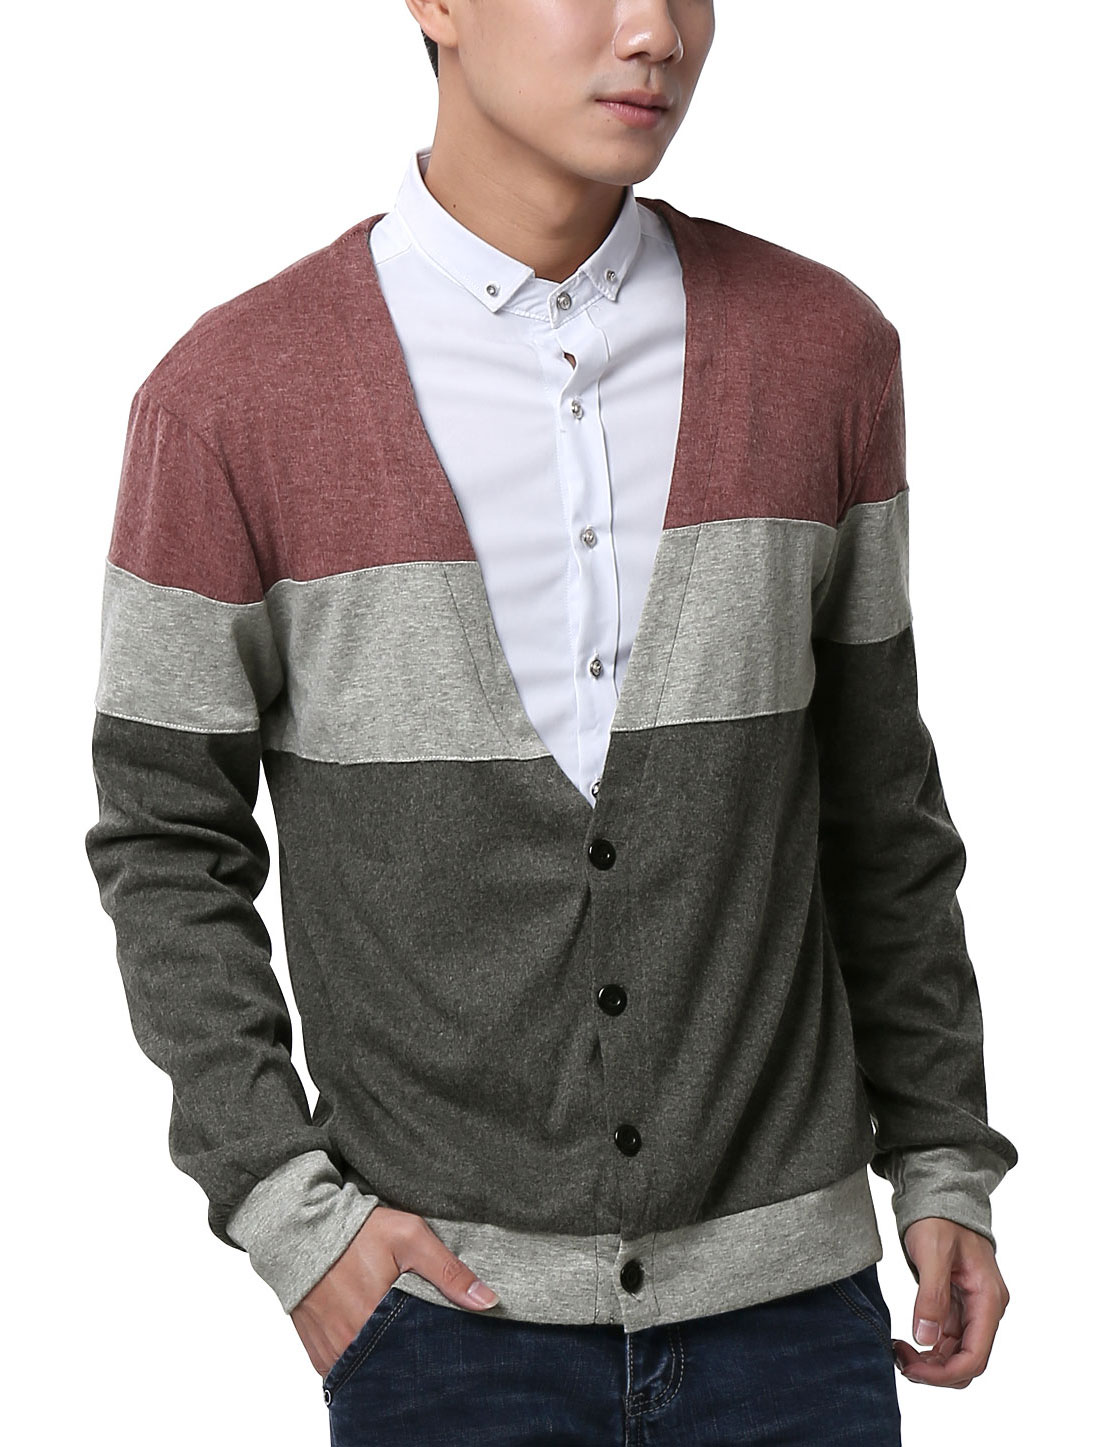 Men Single Breasted Color Block Casual Sweater Coat Gray Burgundy S